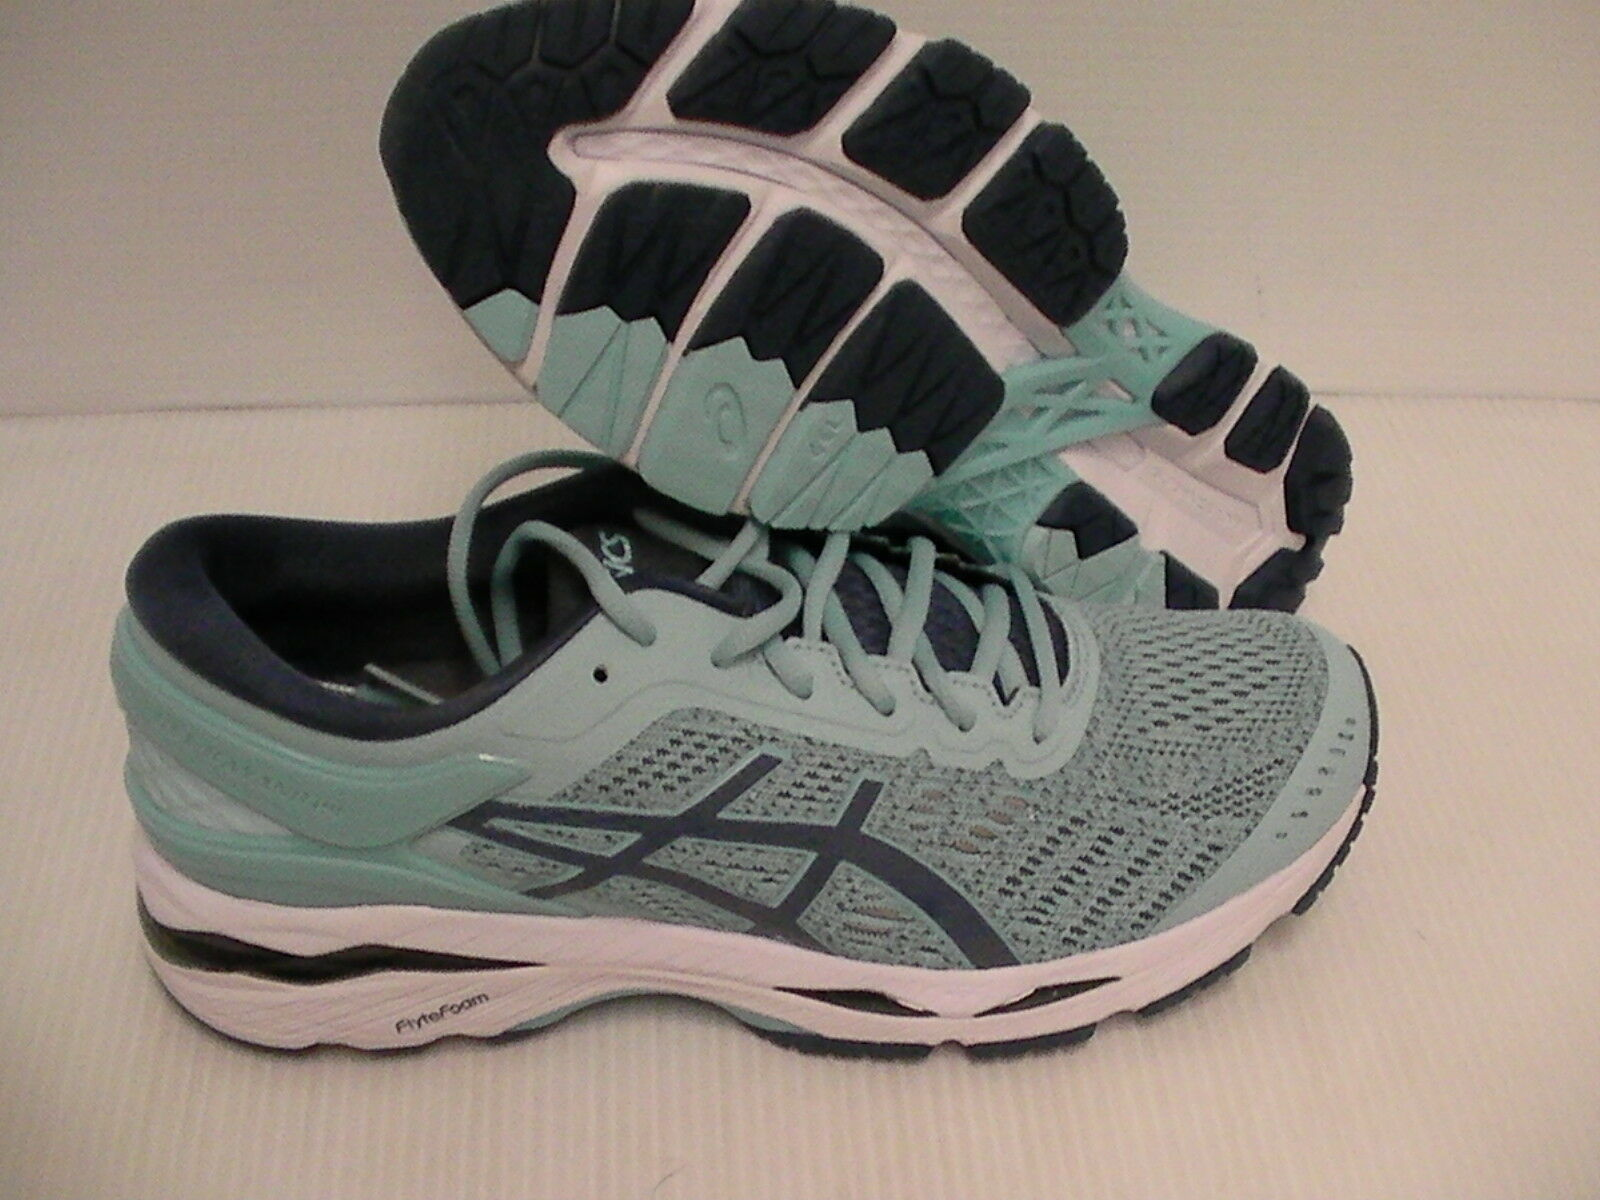 Women's asics gel kayano 24 running shoes porcelain blue smoke blue size 10 us